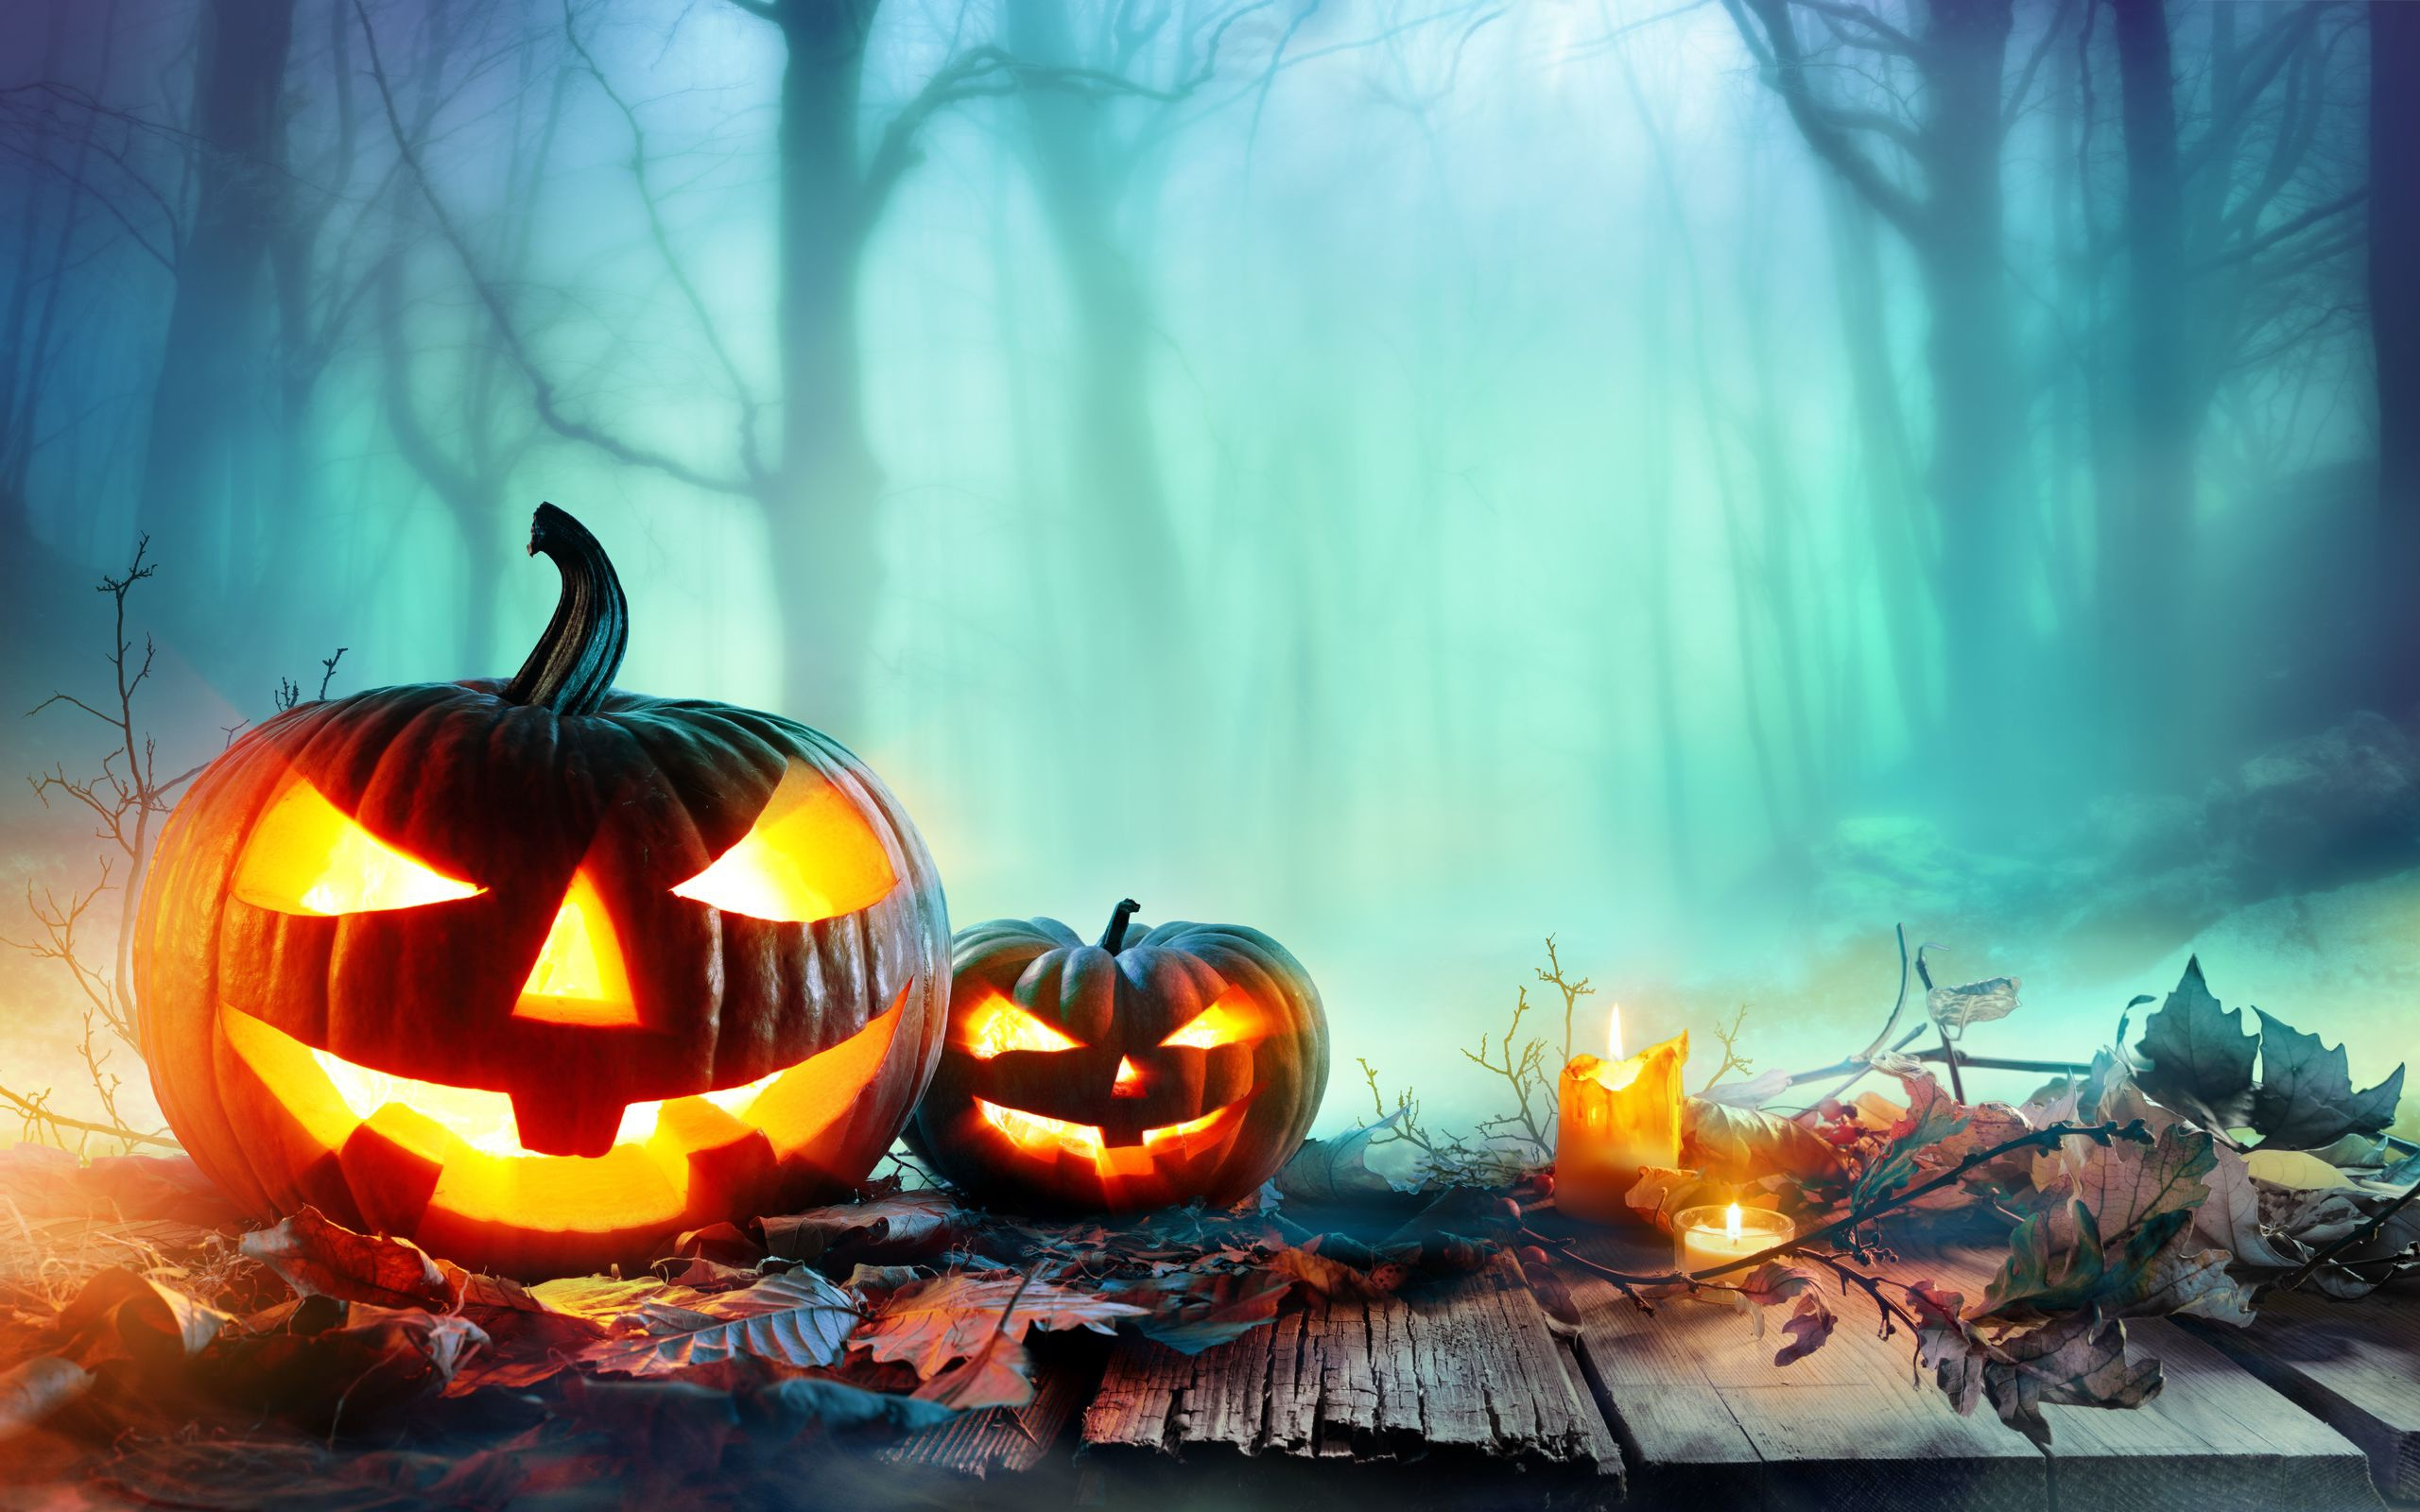 Wallpaper Of Candle Fall Fog Halloween Pumpkin